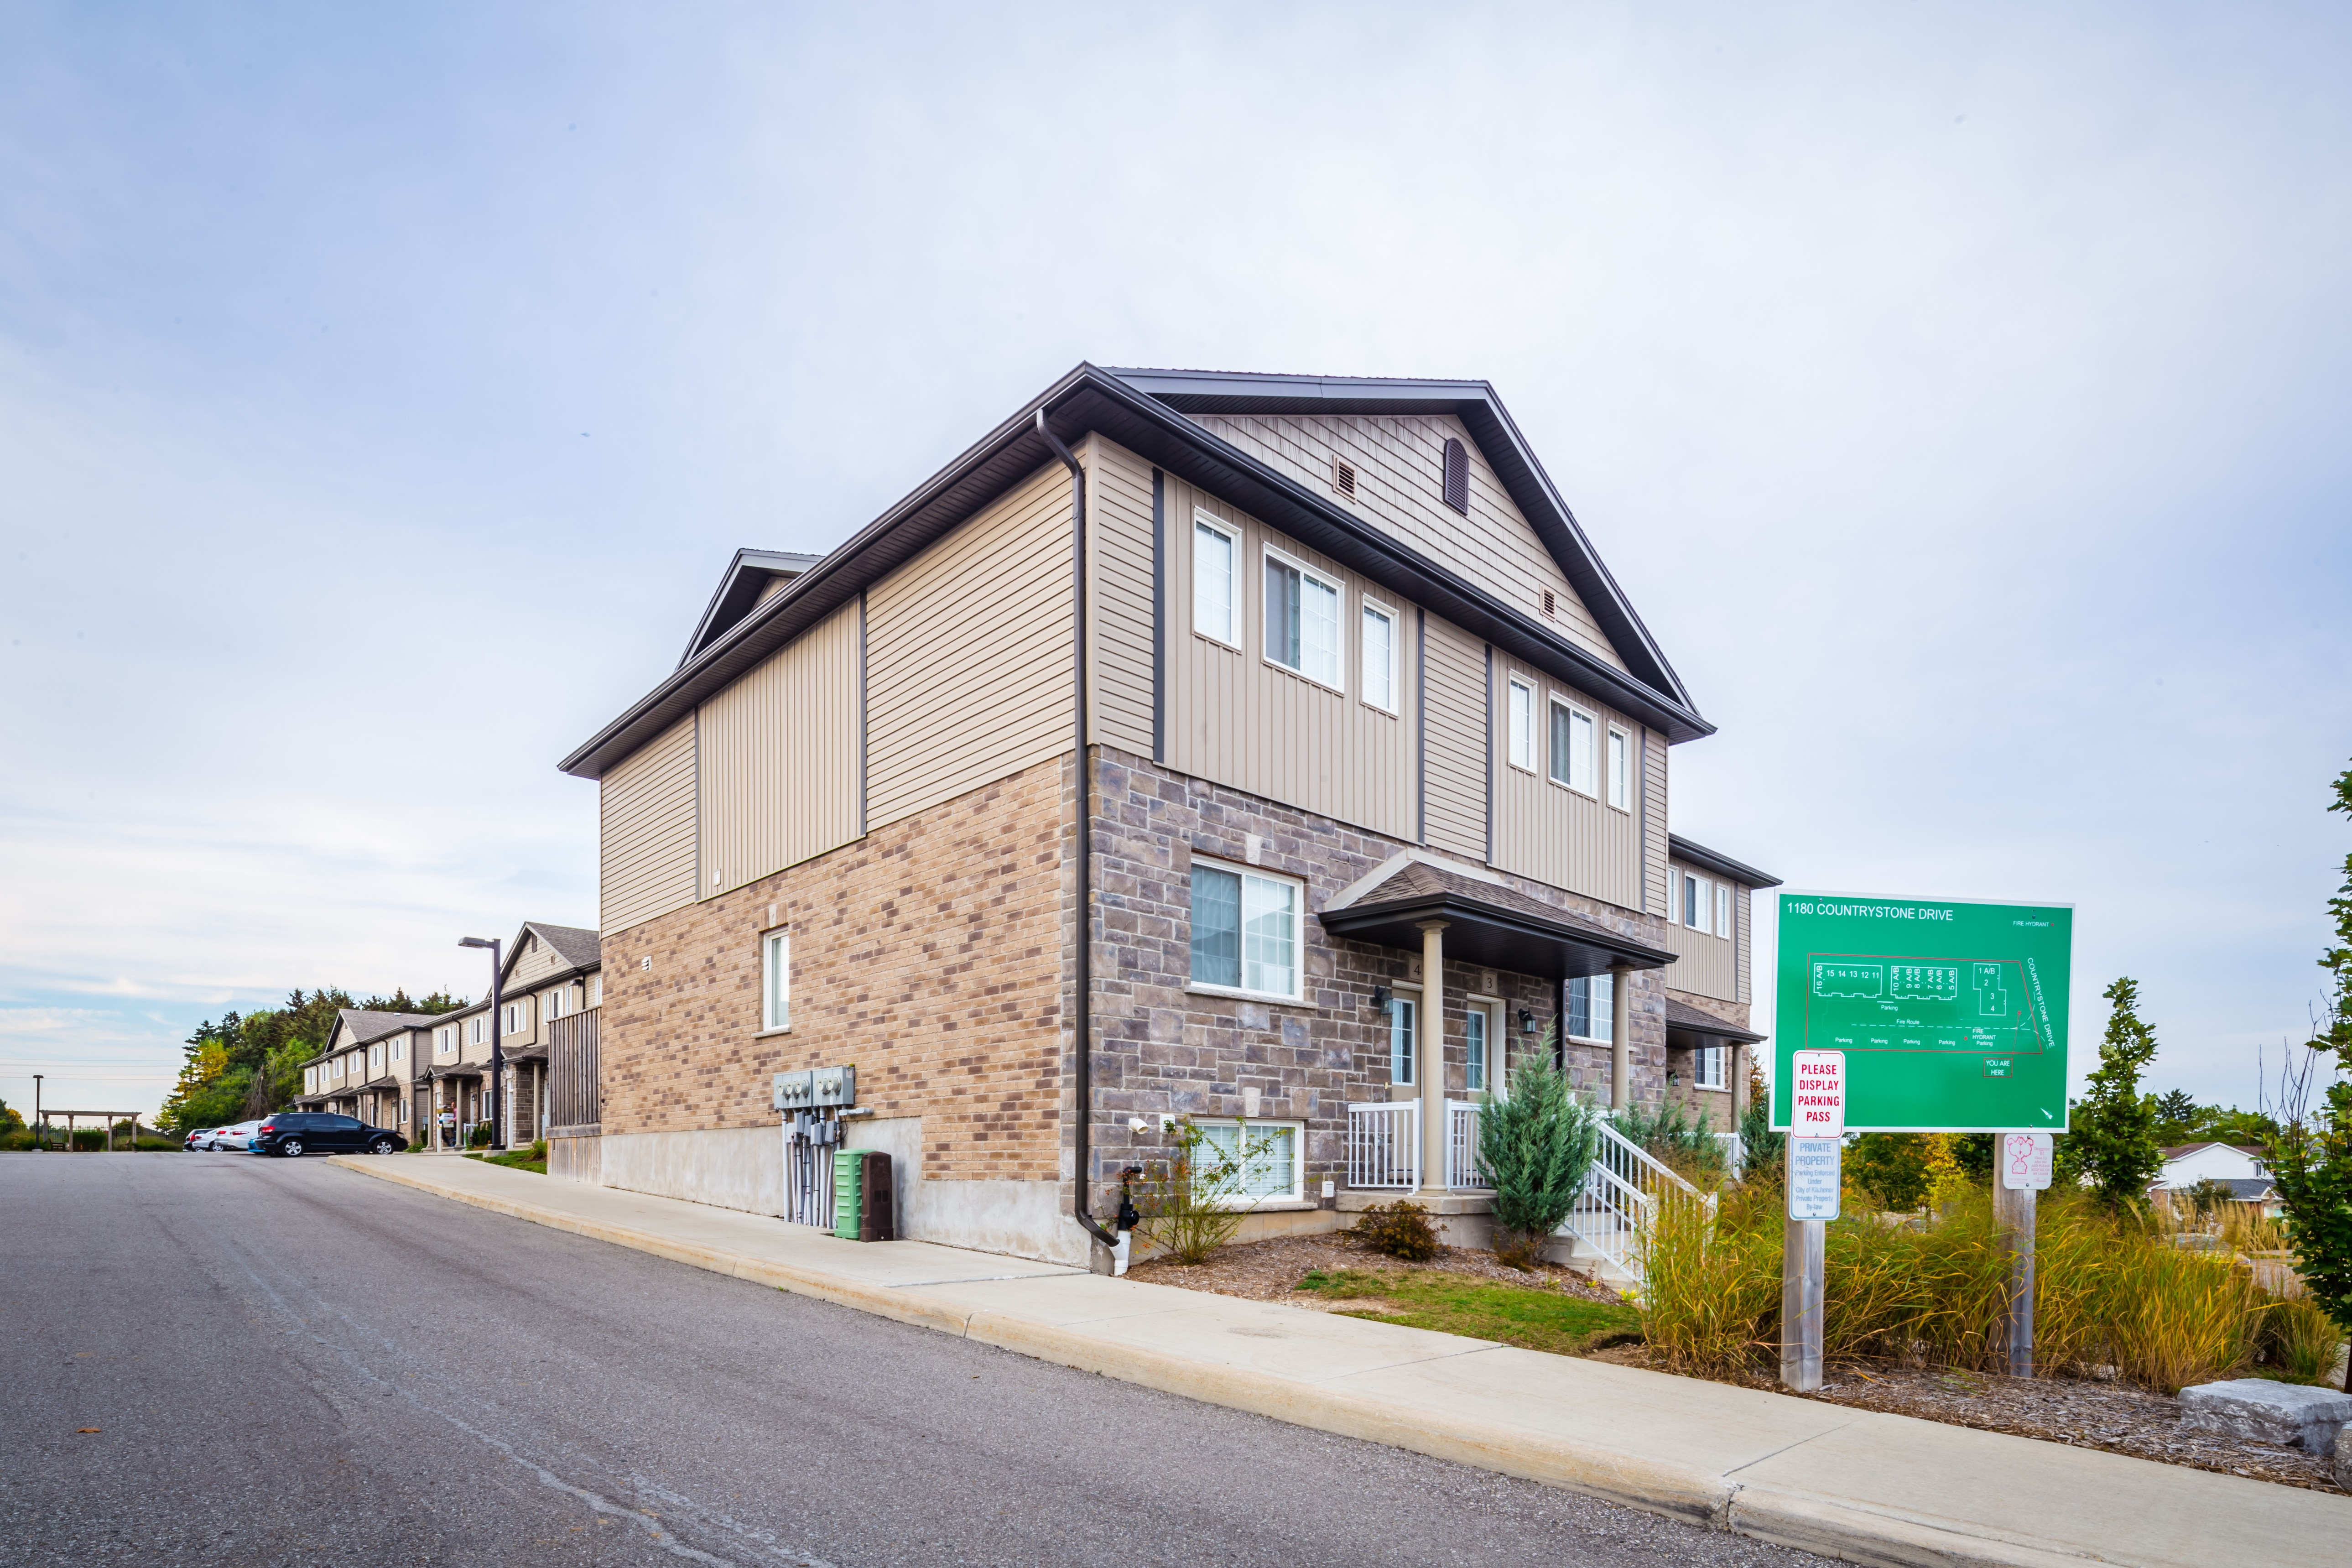 1180 Countrystone Condos at 1180 Countrystone Dr, Kitchener 0